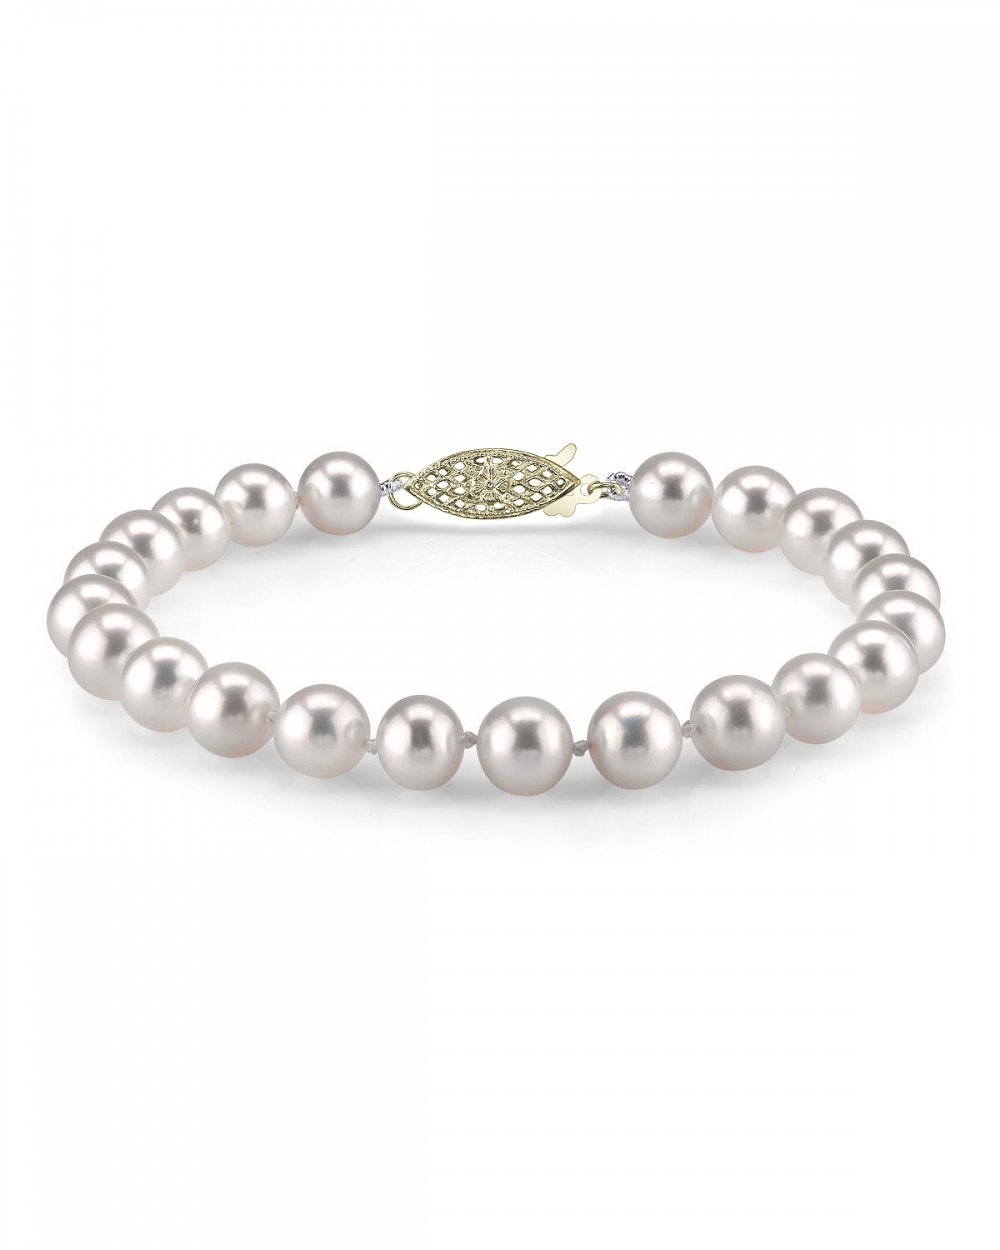 14K Gold 7-8mm AAA Quality Round White Freshwater Cultured Pearl Bracelet for Women